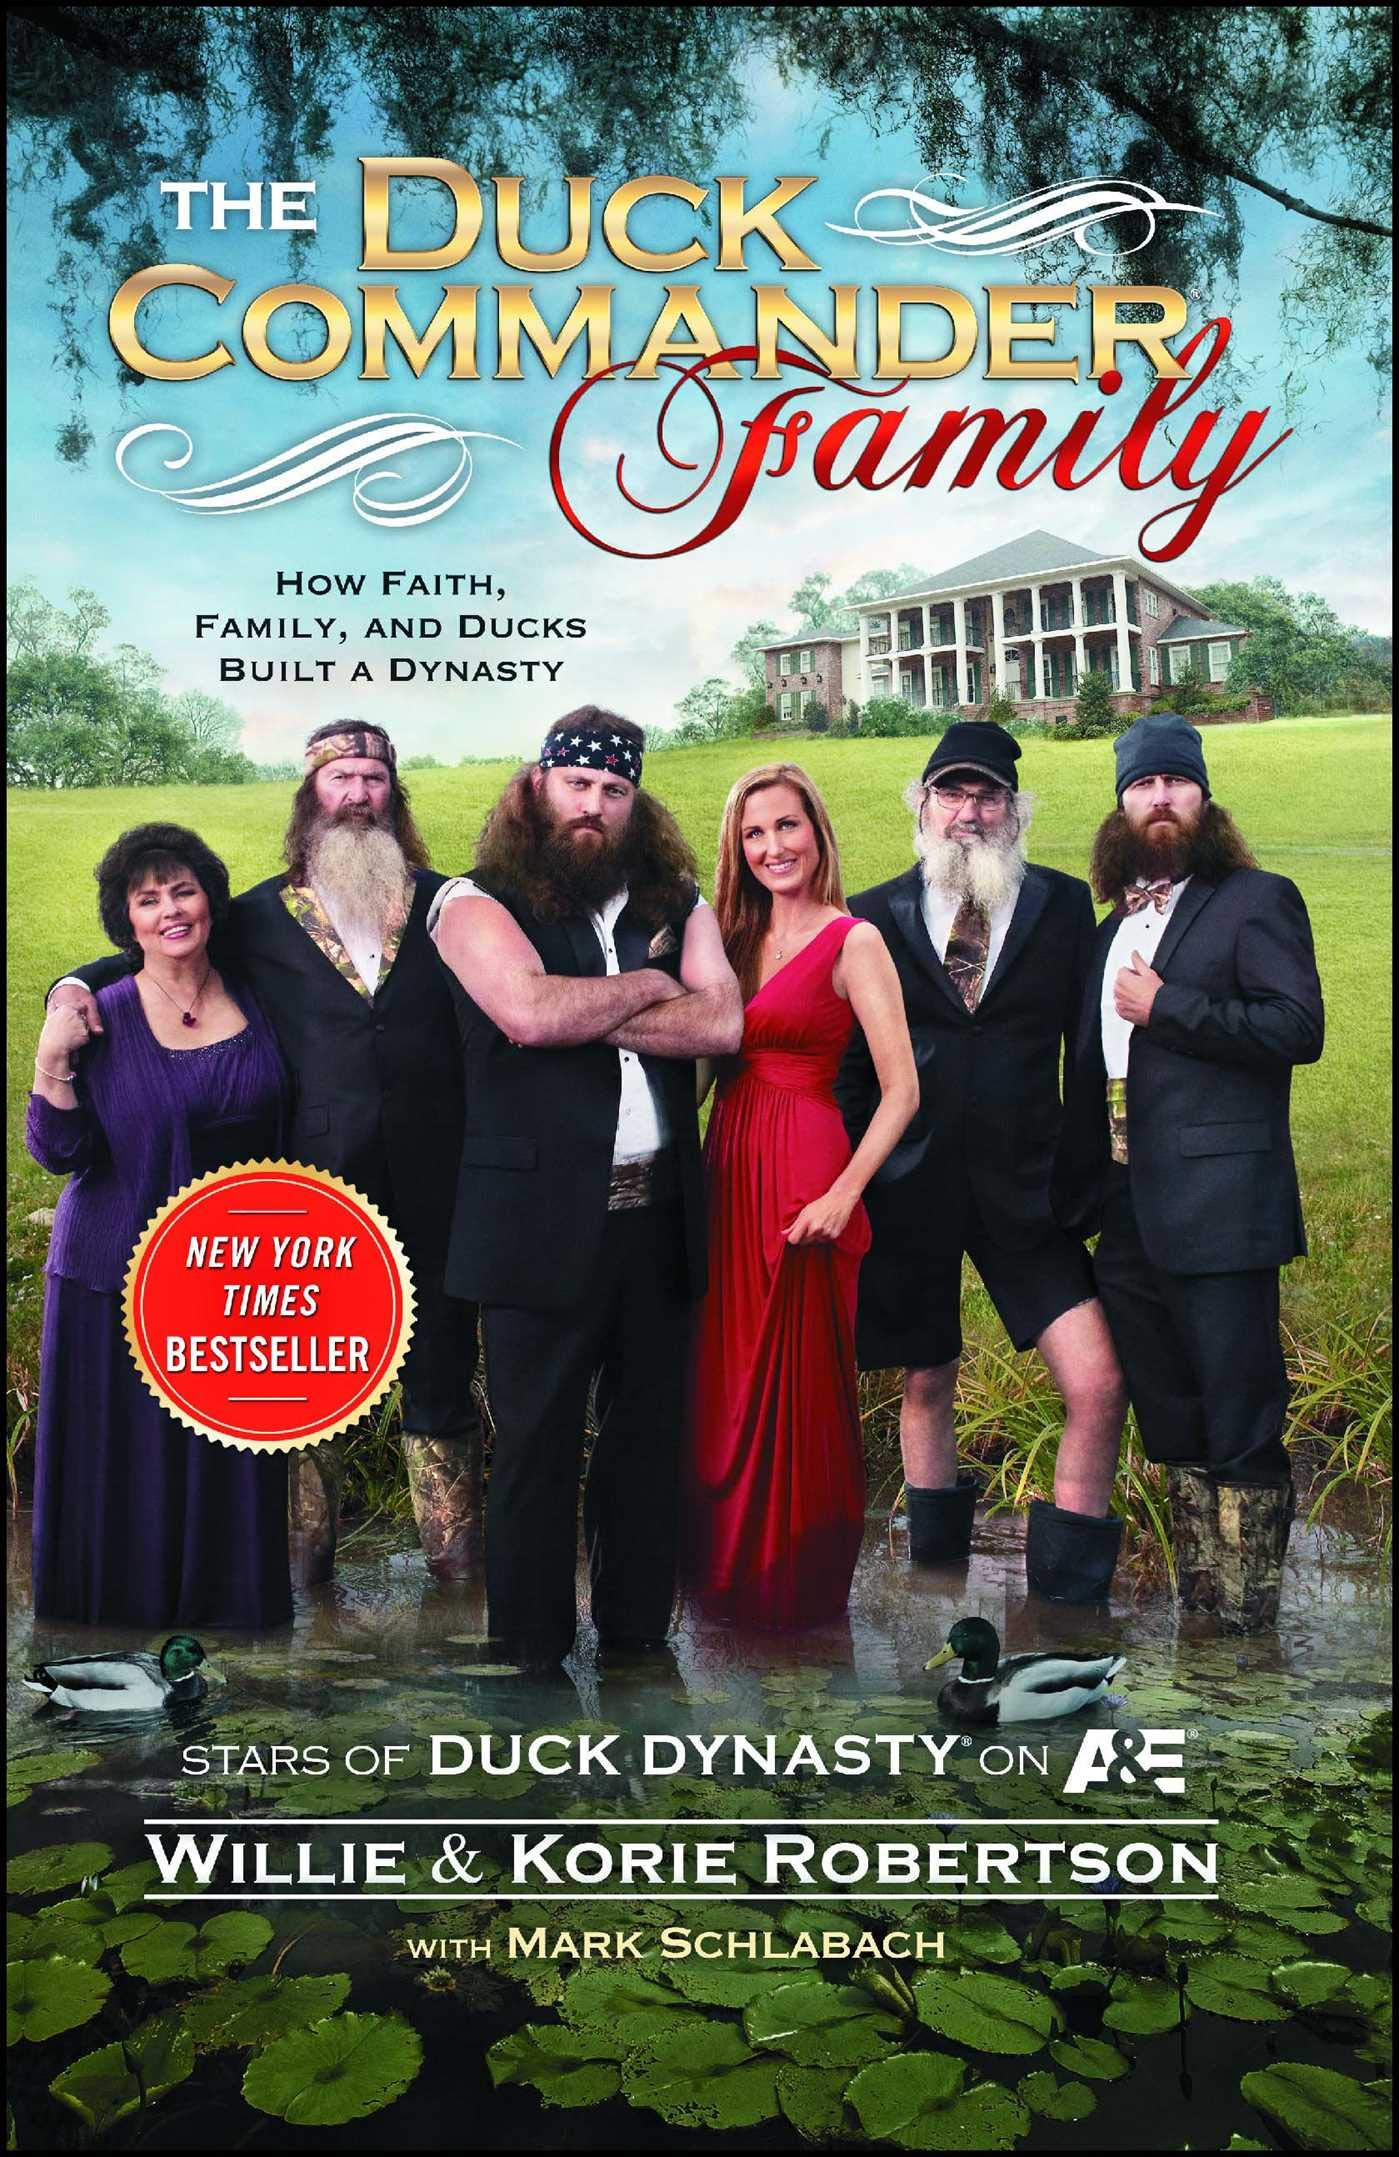 The Duck Commander Family book cover